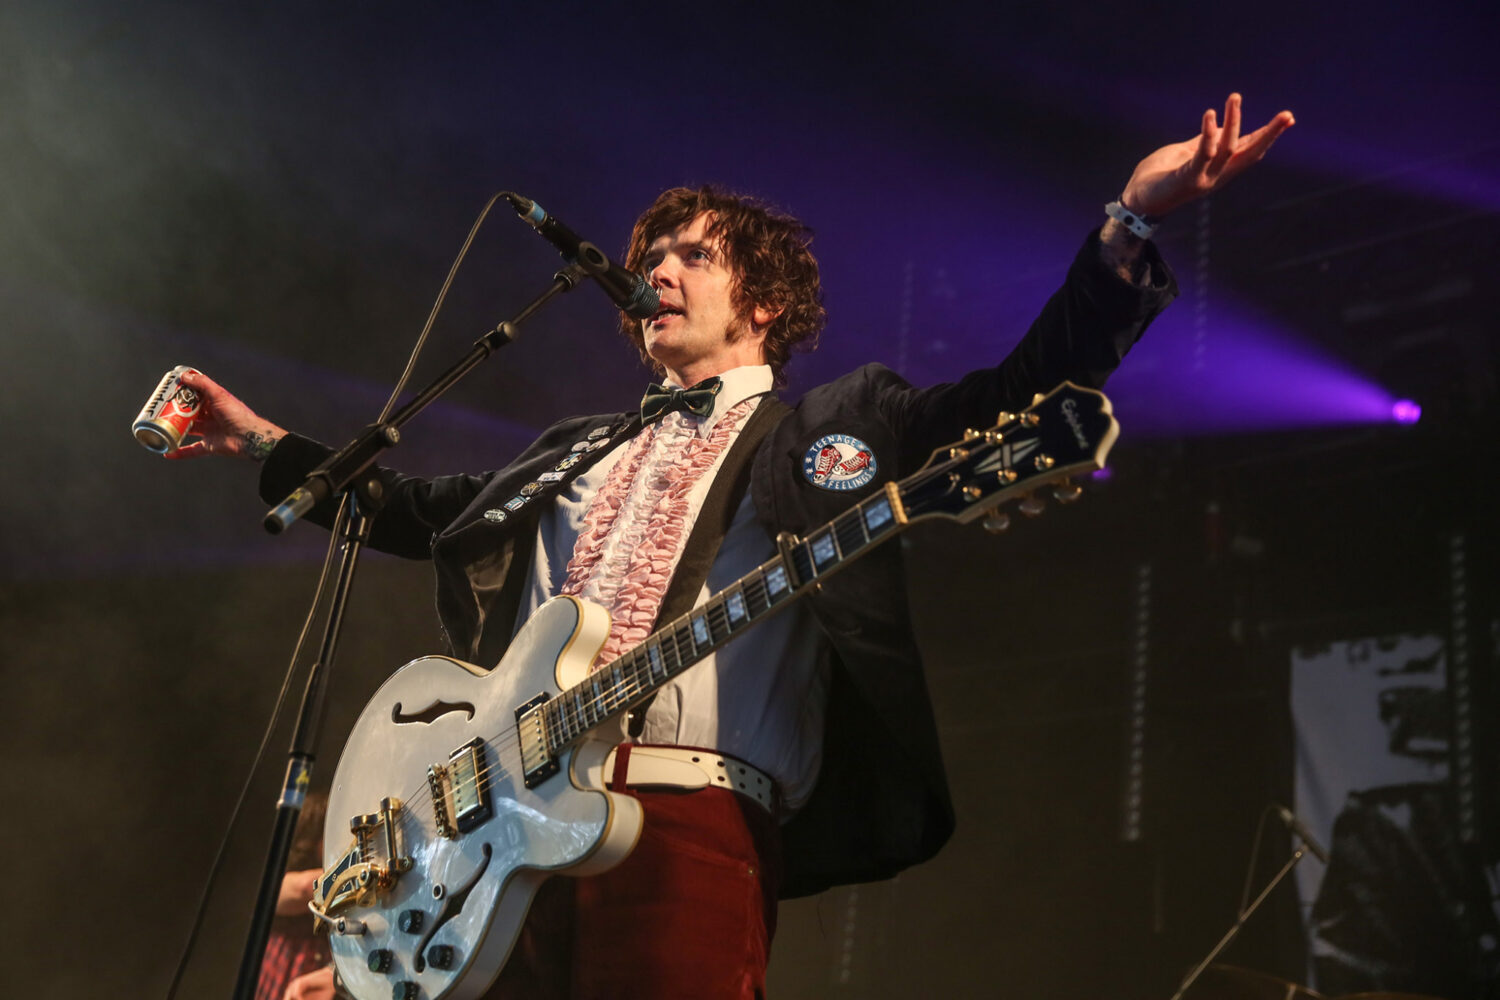 Beach Slang are releasing an EP of reworked tracks under the name Quiet Slang